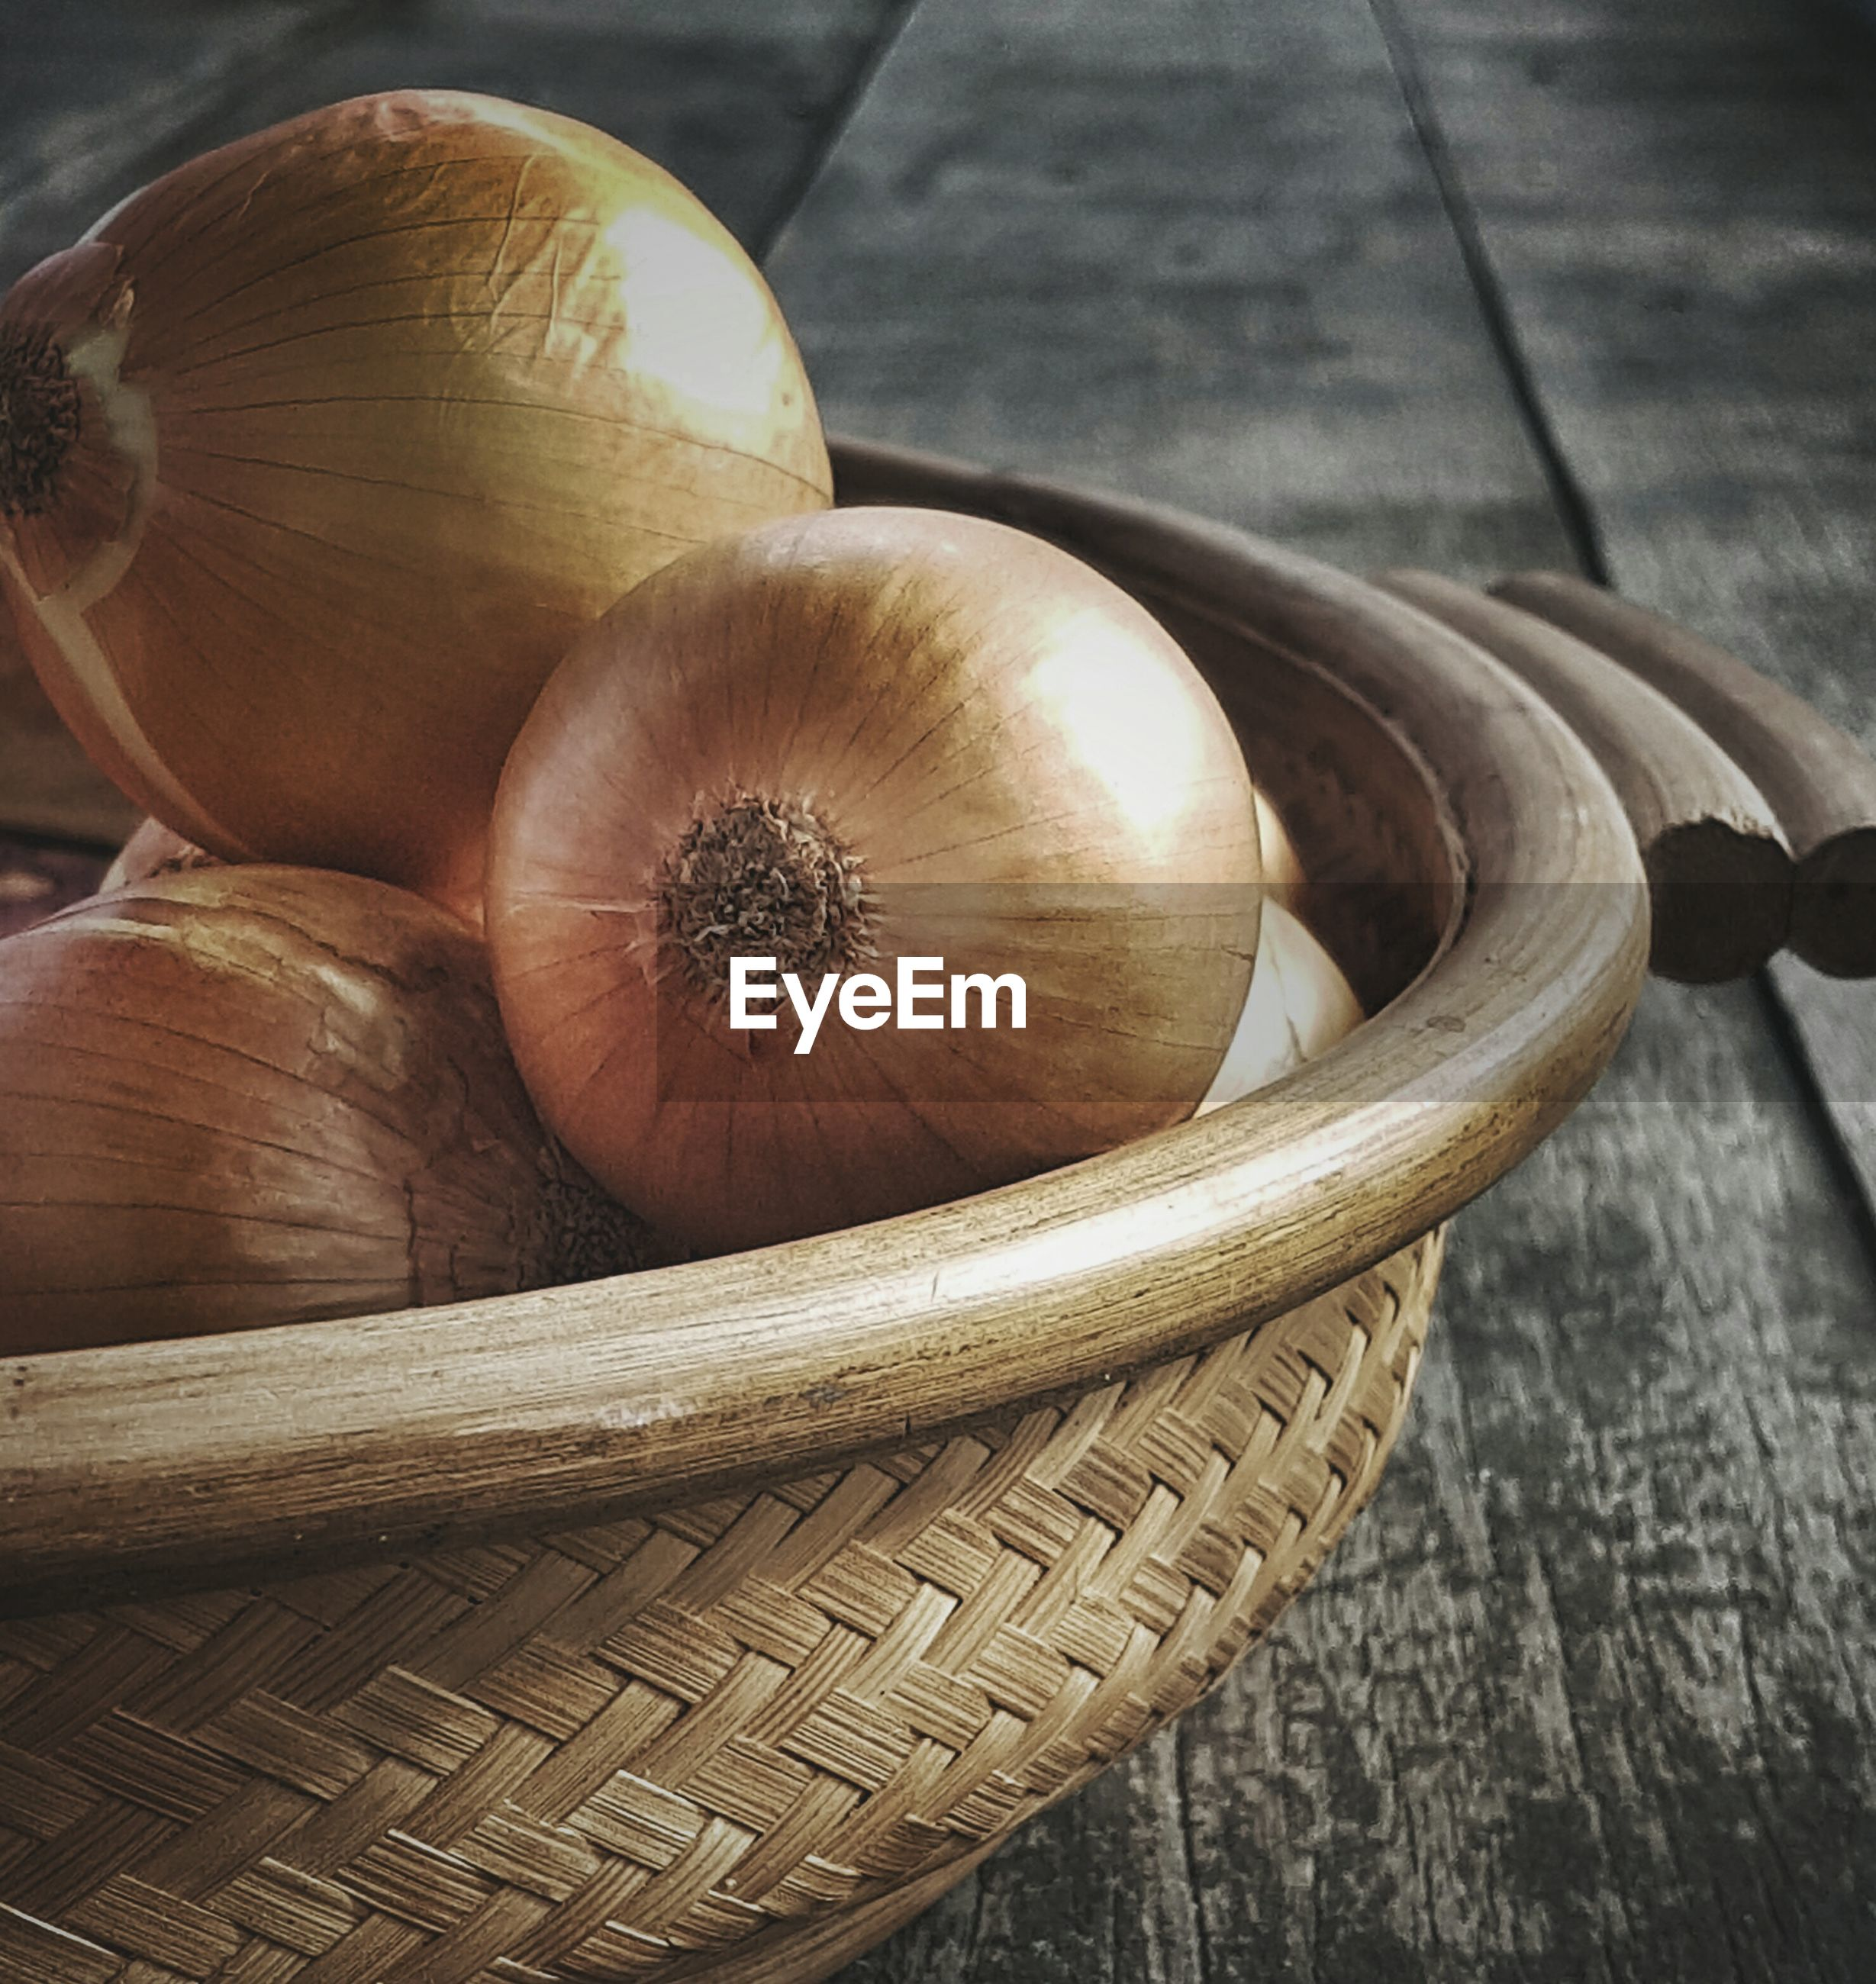 Close-up of onions in basket on table